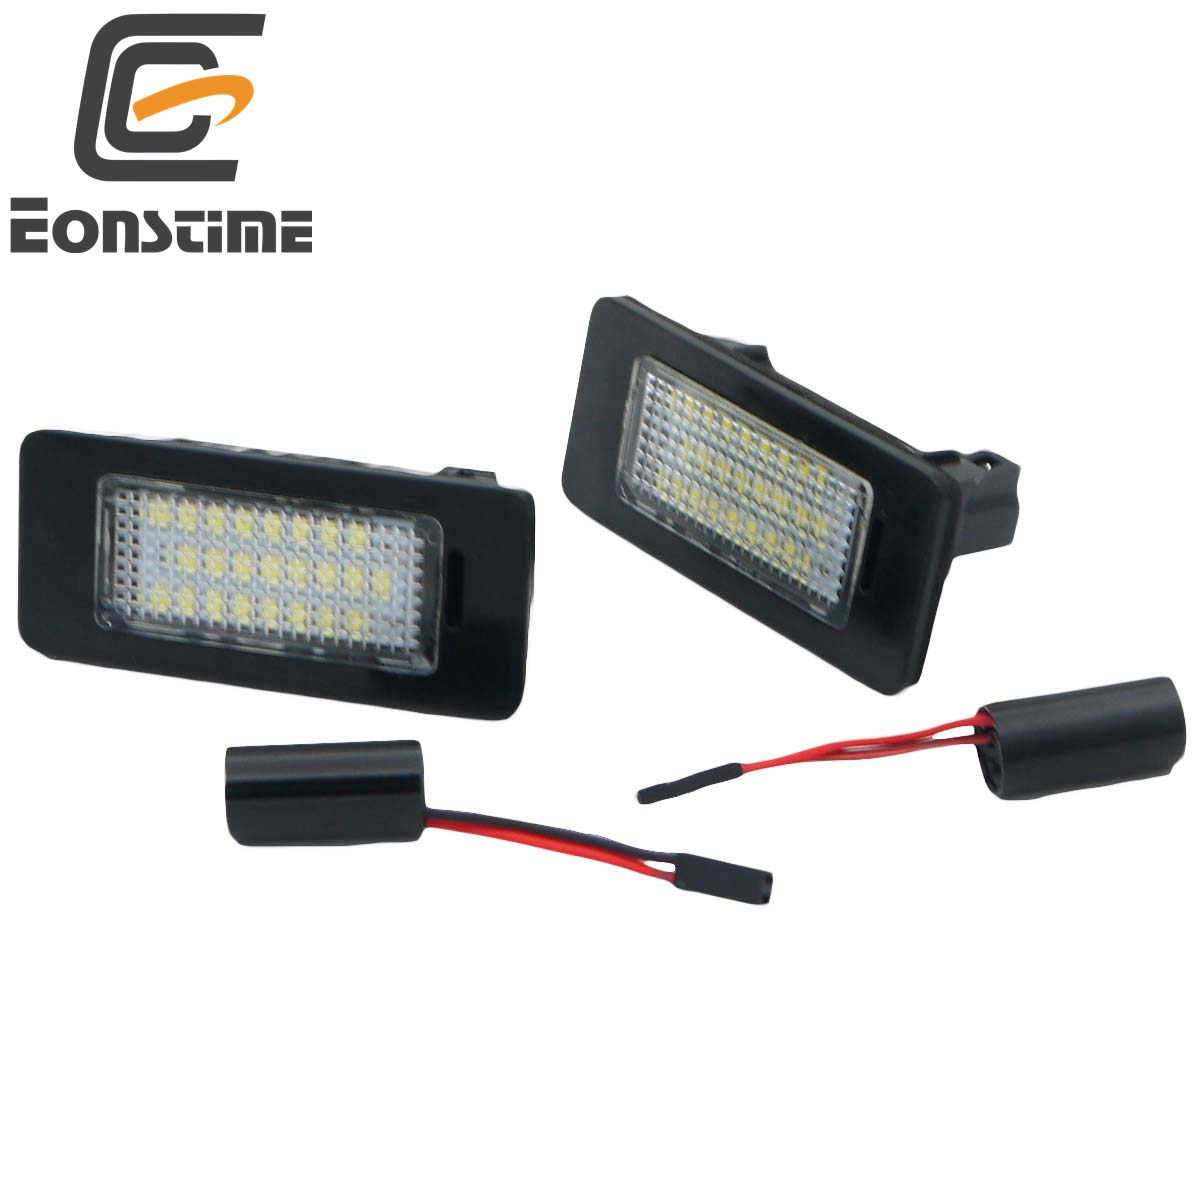 2x OEM-Replace 18-SMD LED License Plate Light Assy For Toyota CH-R CHR 2017-2019